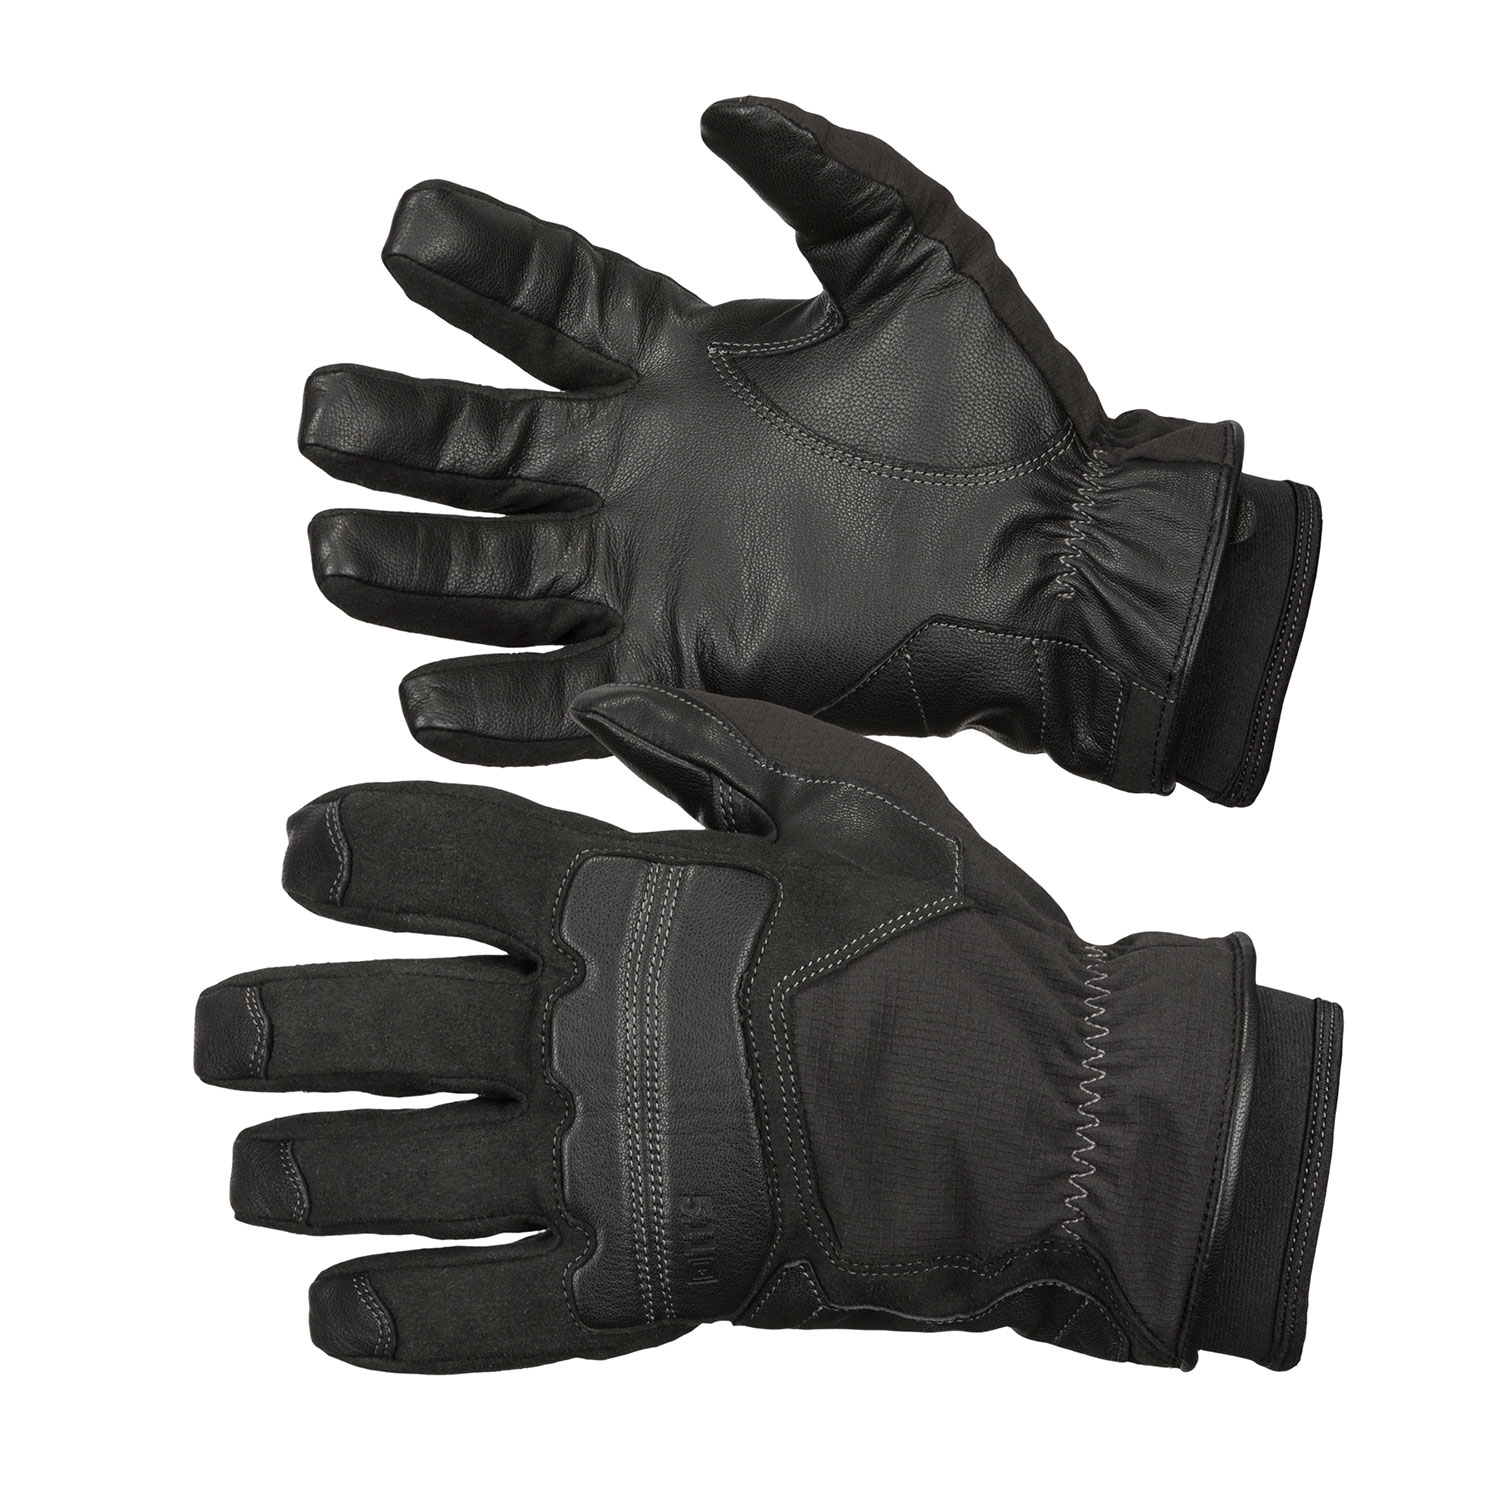 5.11 Tactical Caldus Winter Gloves